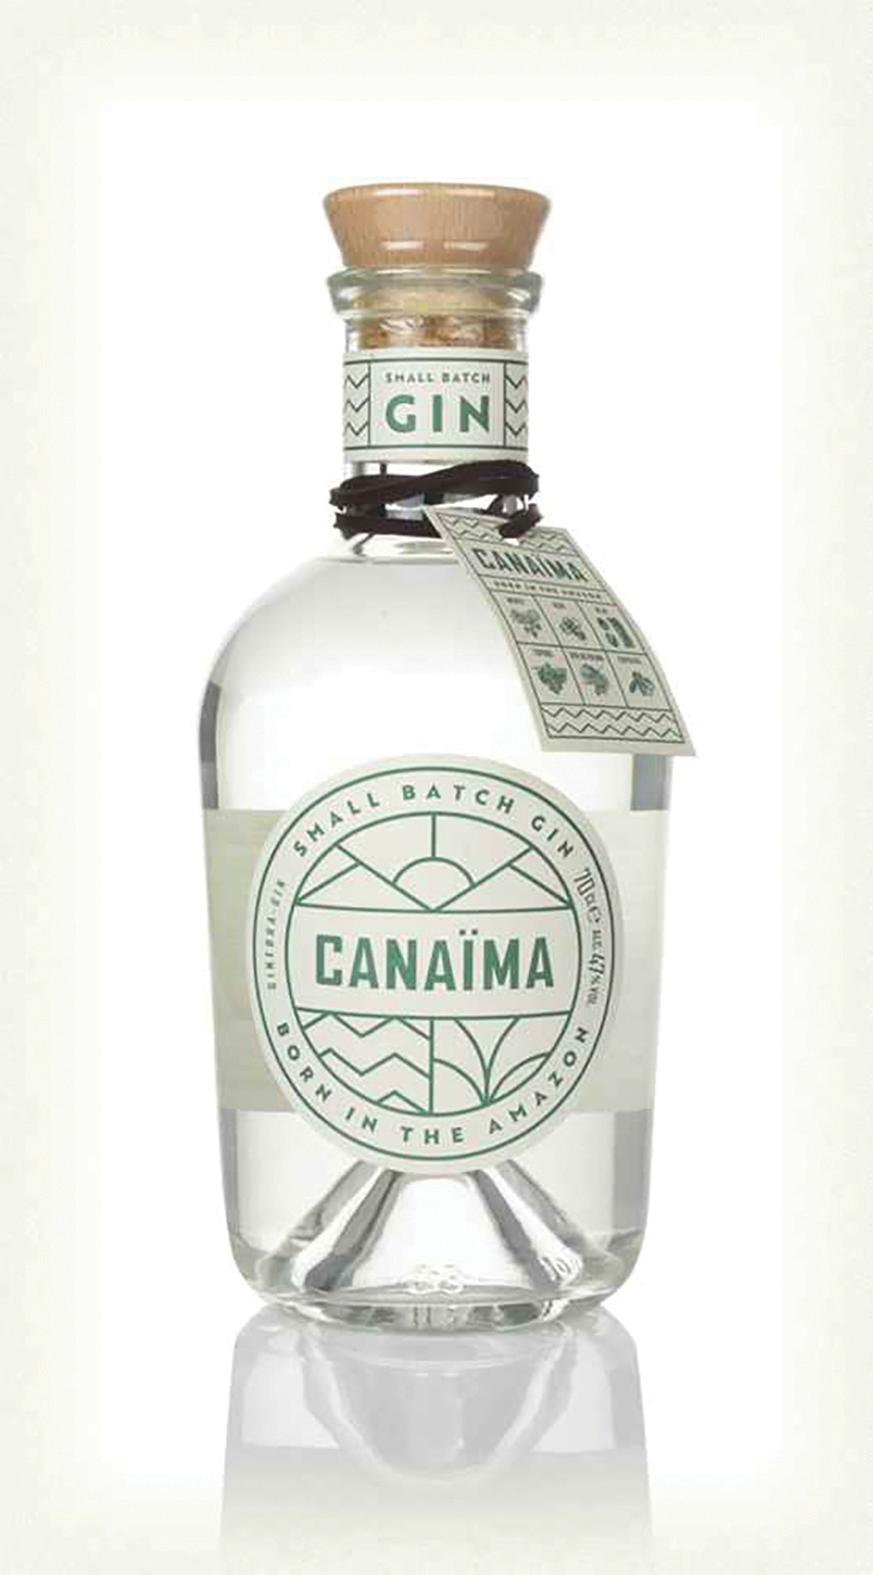 Canaïma Gin uses 19 botanicals, some of which are native to the Amazon.